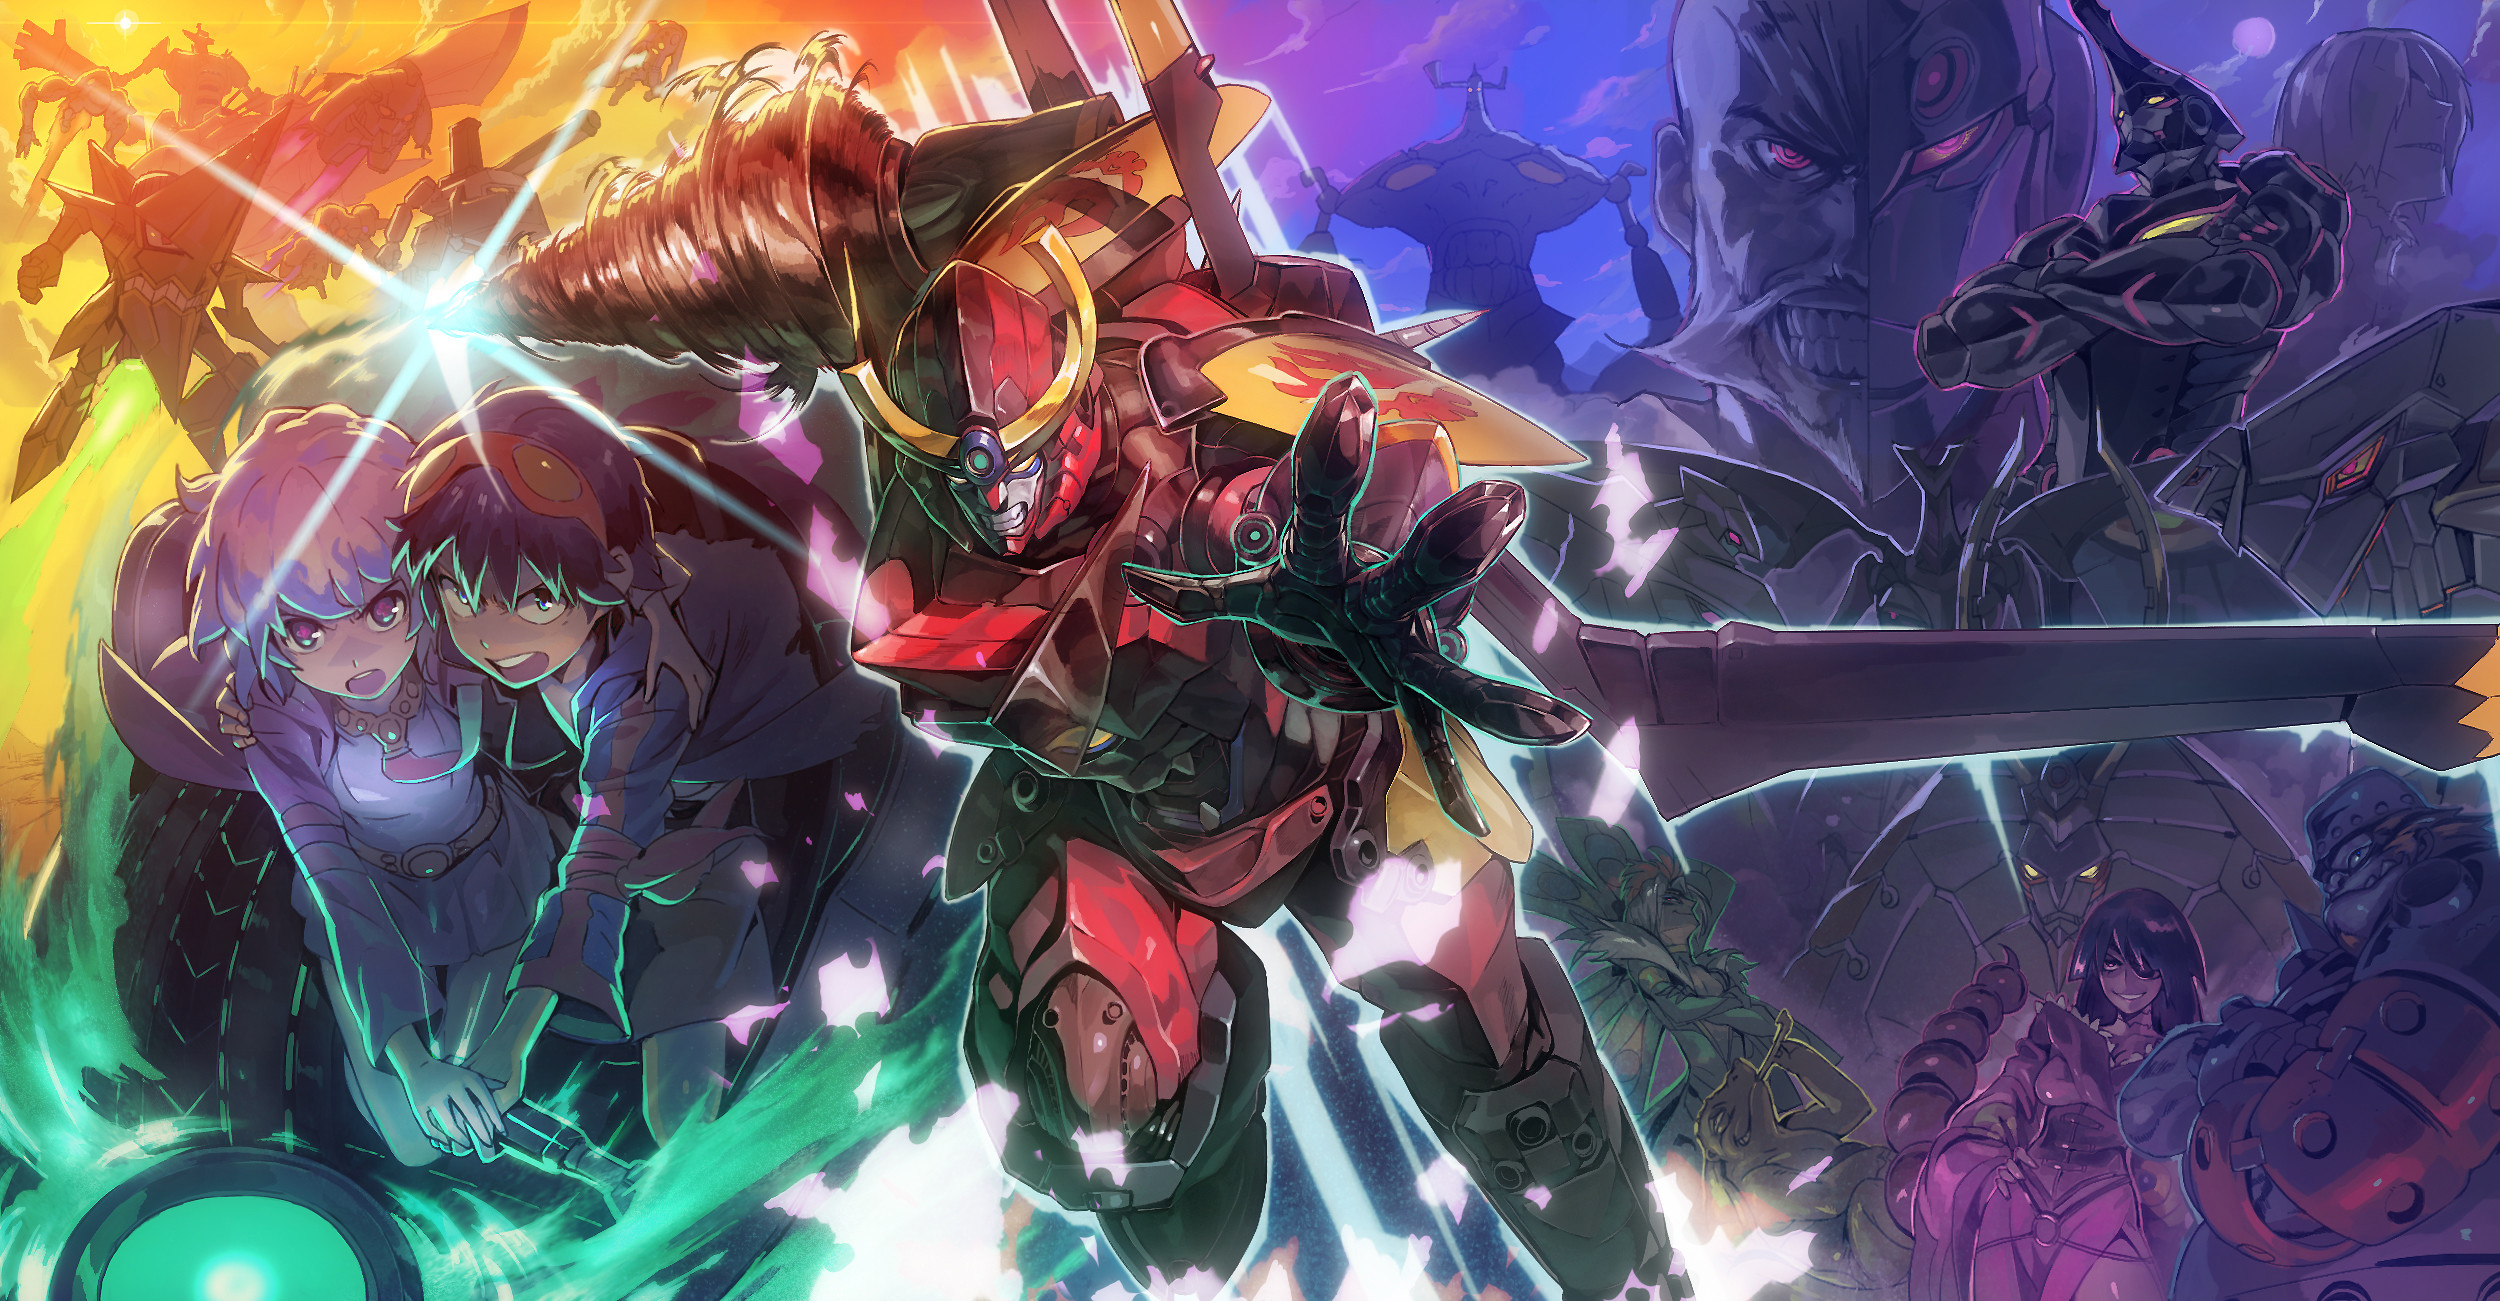 2500x1301 Only the best free Tengen Toppa Gurren Lagann wallpapers you can find  online! Tengen Toppa Gurren Lagann wallpapers and background images for  desktop, ...